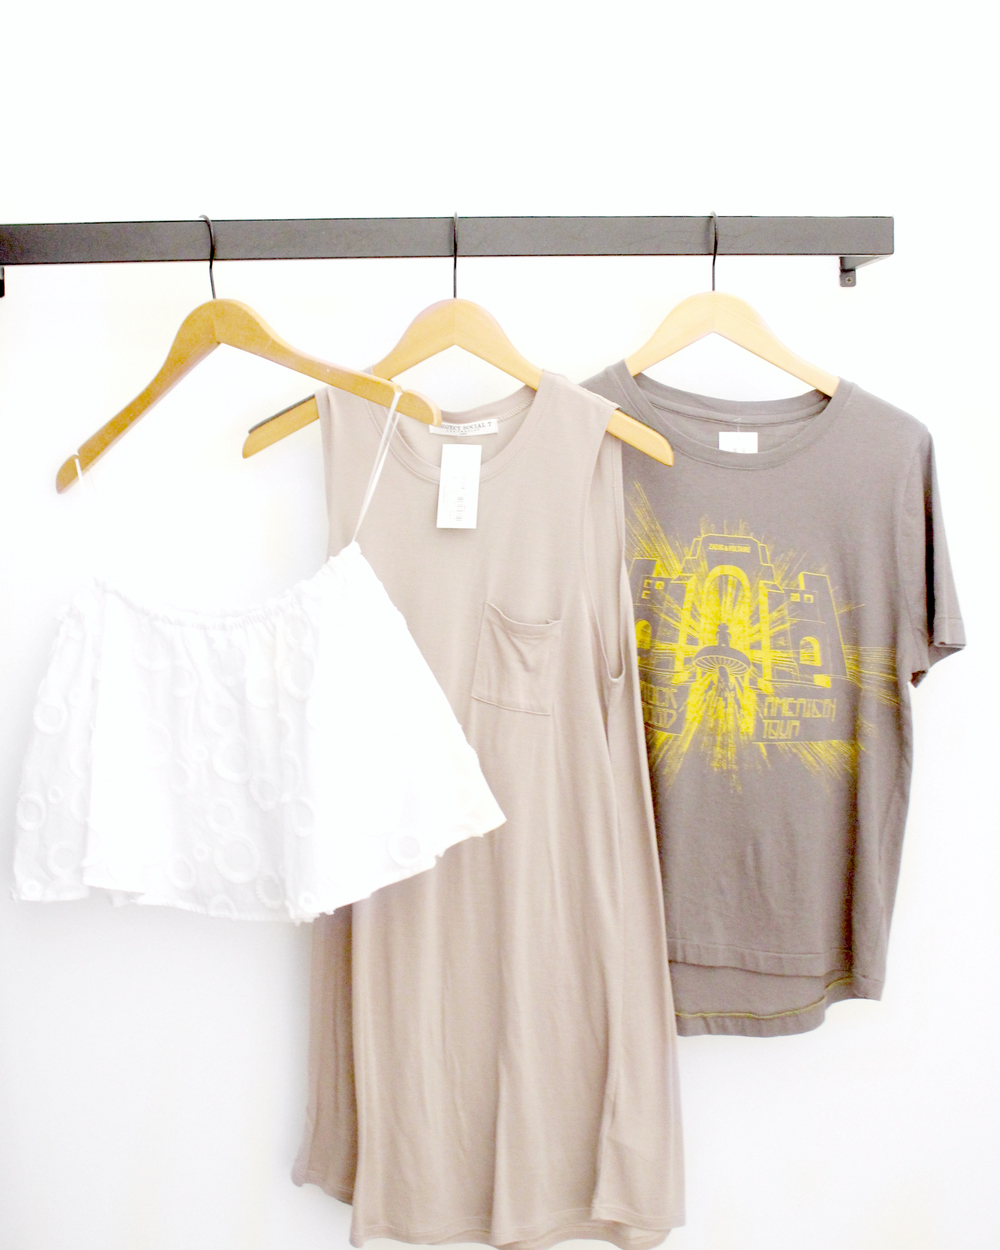 My favorites from Garbarini (I took the far right T-shirt home with me!)